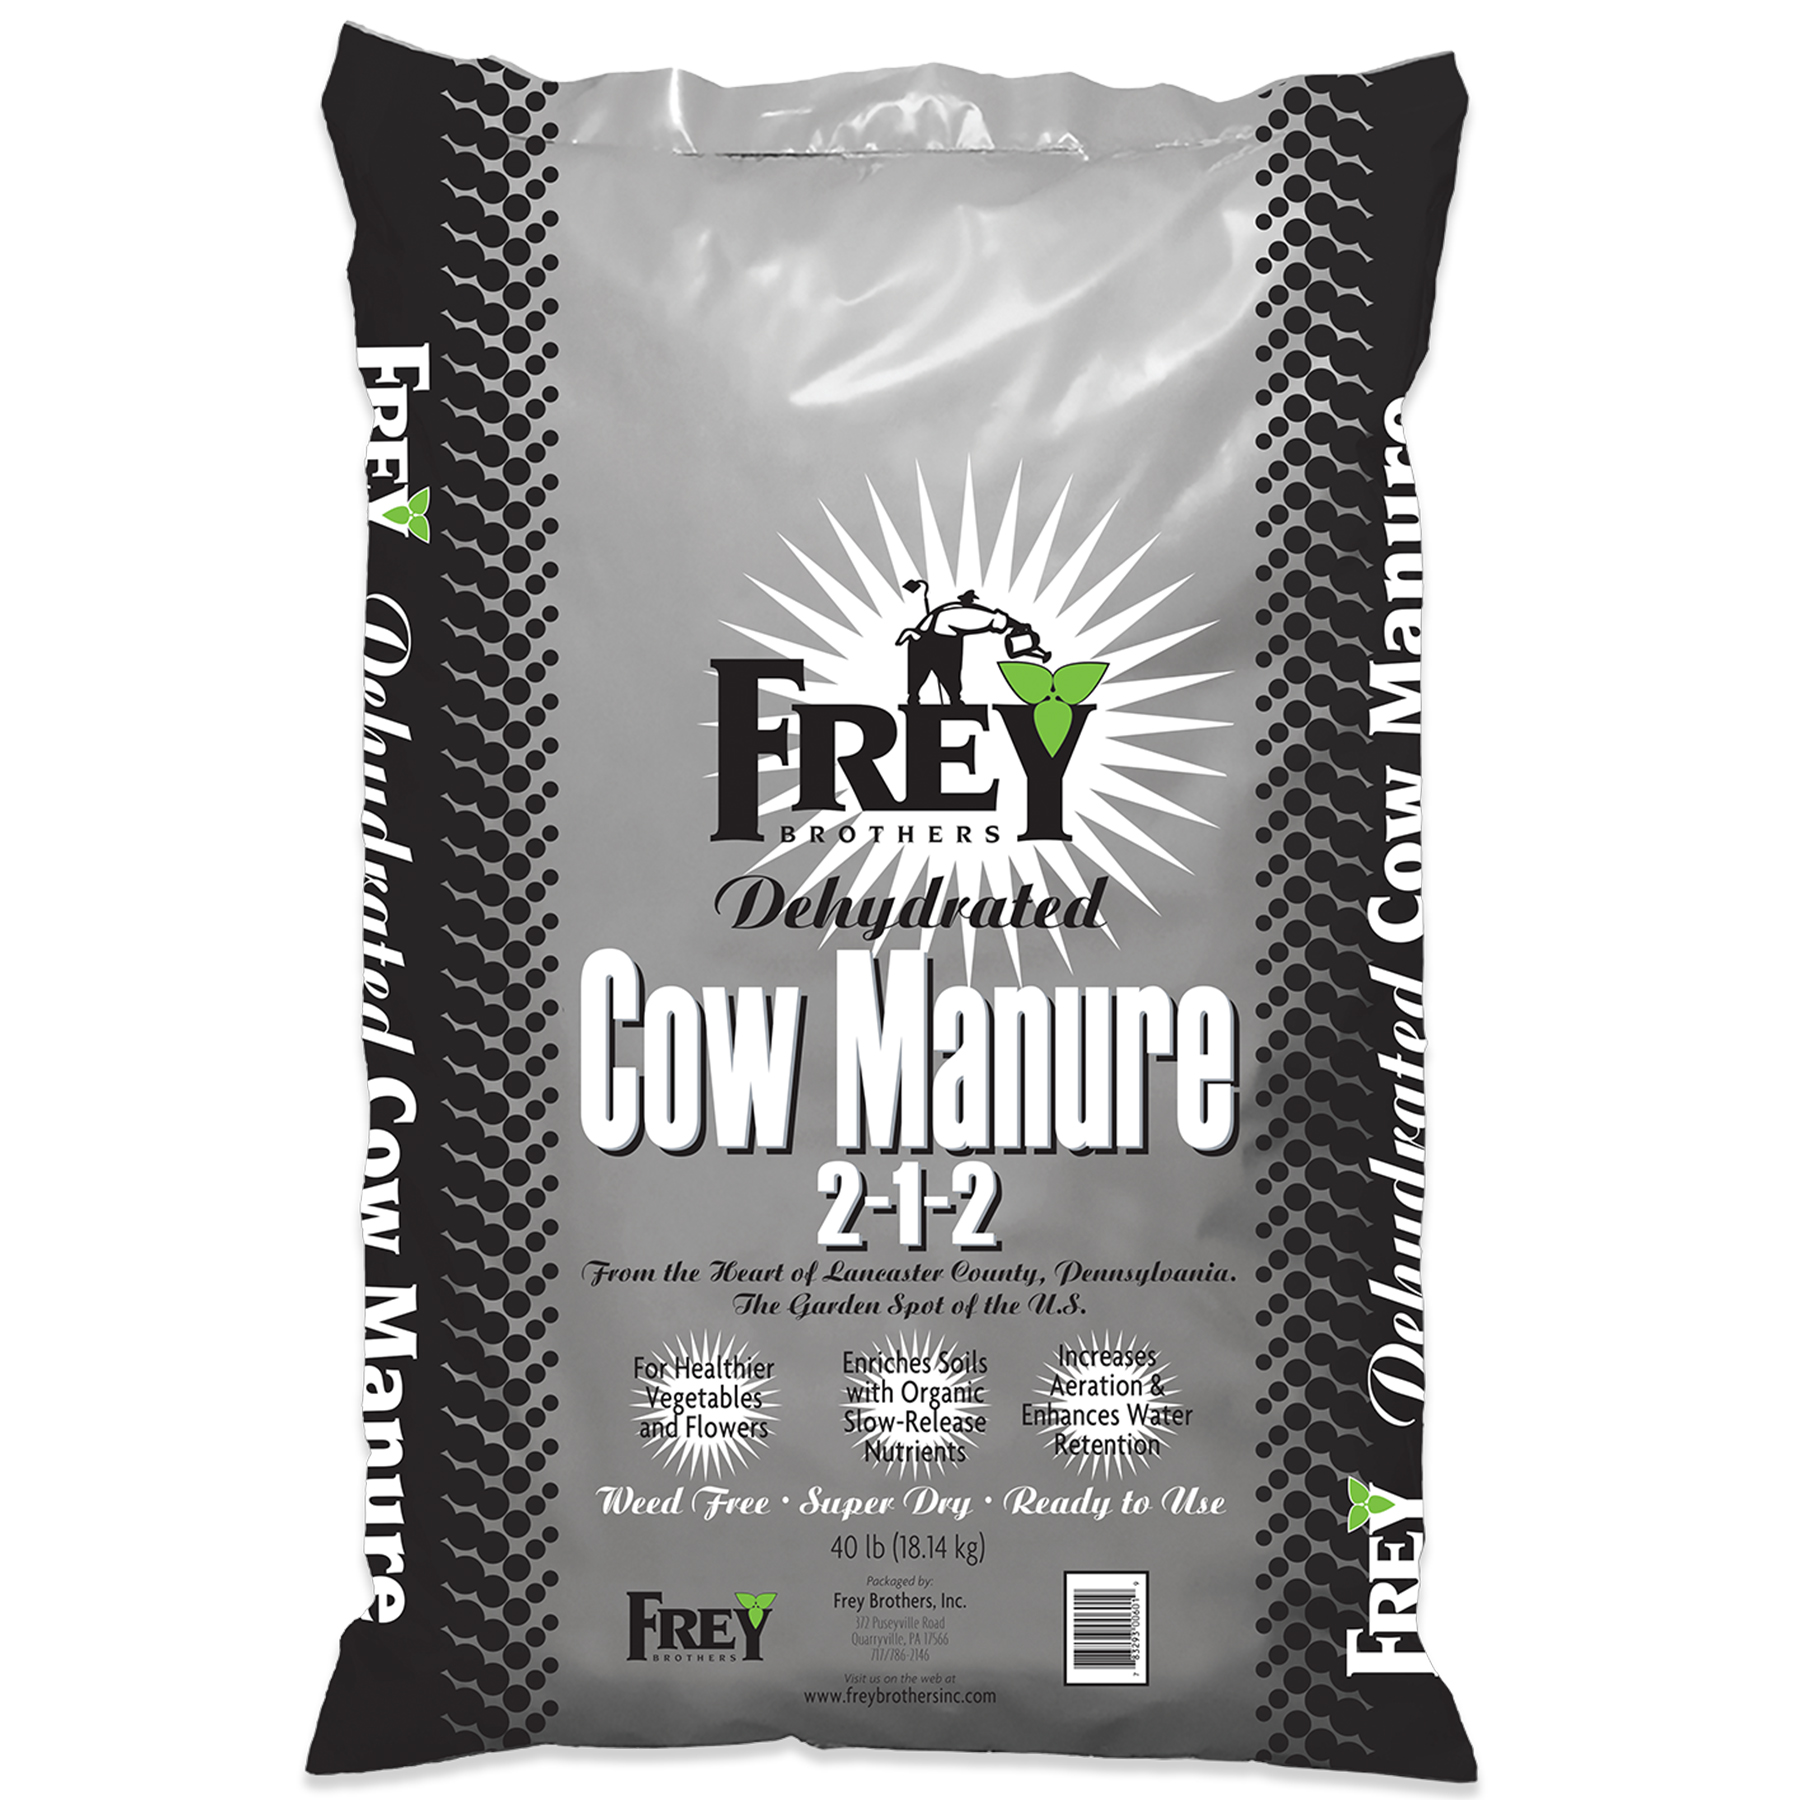 Dehydrated Cow Manure 2-1-2